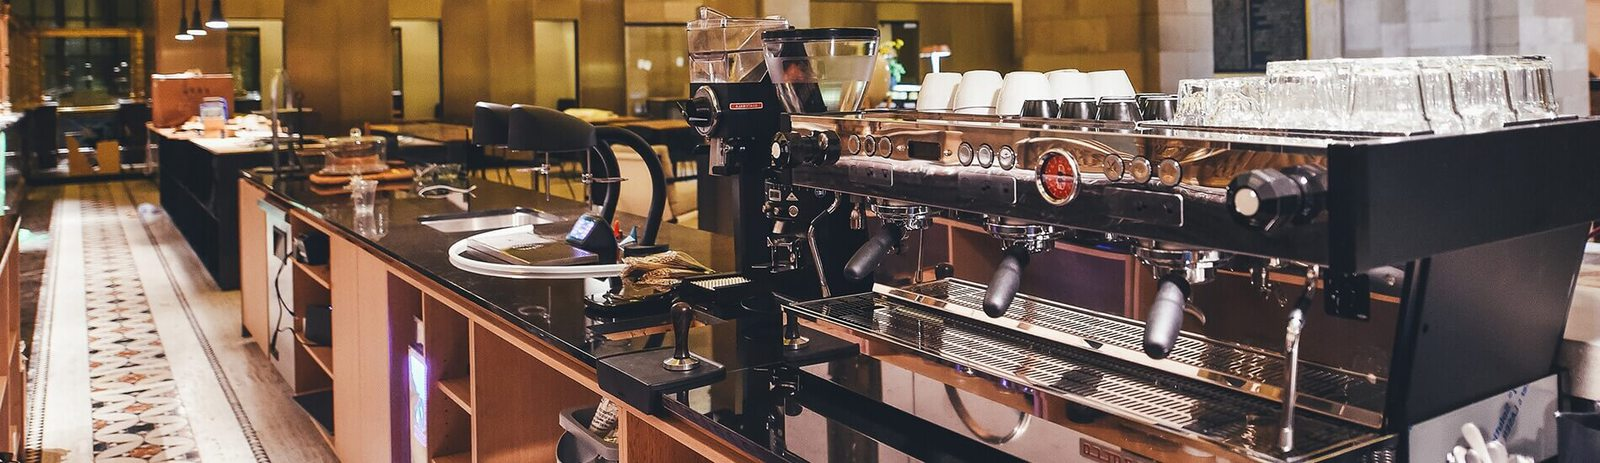 Top 5 Feature-Filled Coffee Machines